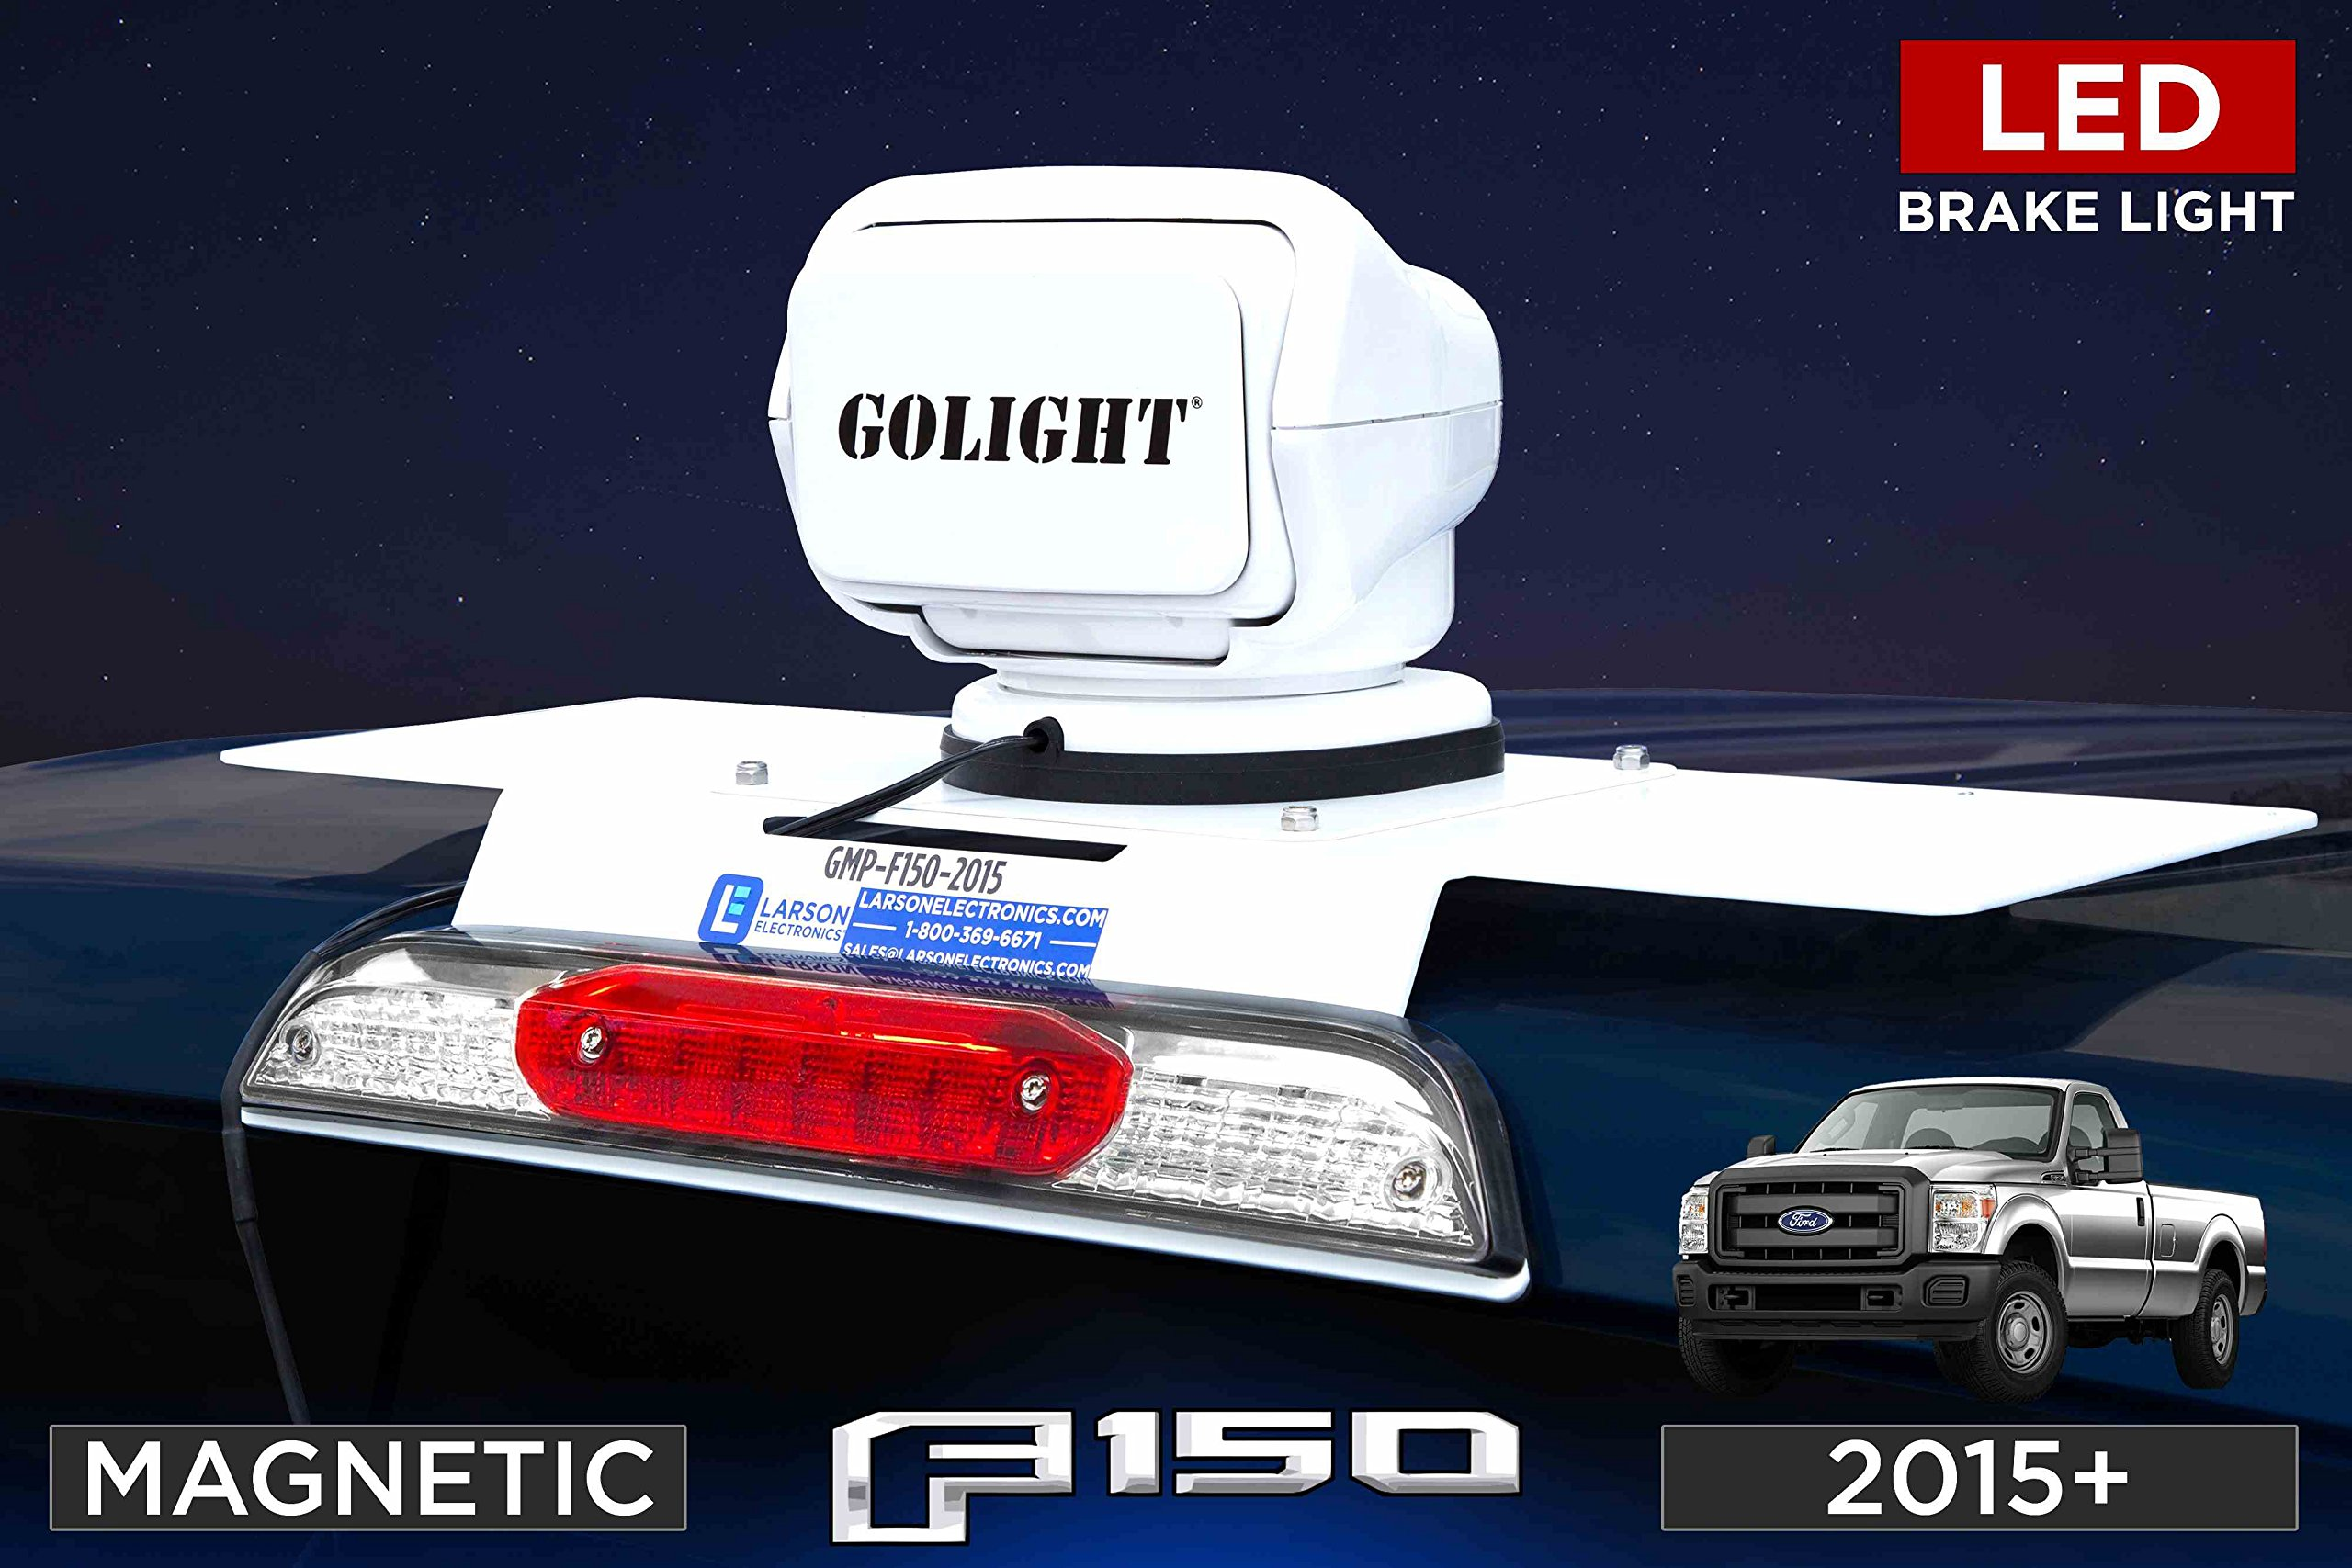 2015+ Ford F150 Aluminum Body Truck Golight Magnetic Mounting Plate w/ LED Brake Lights - No Drill